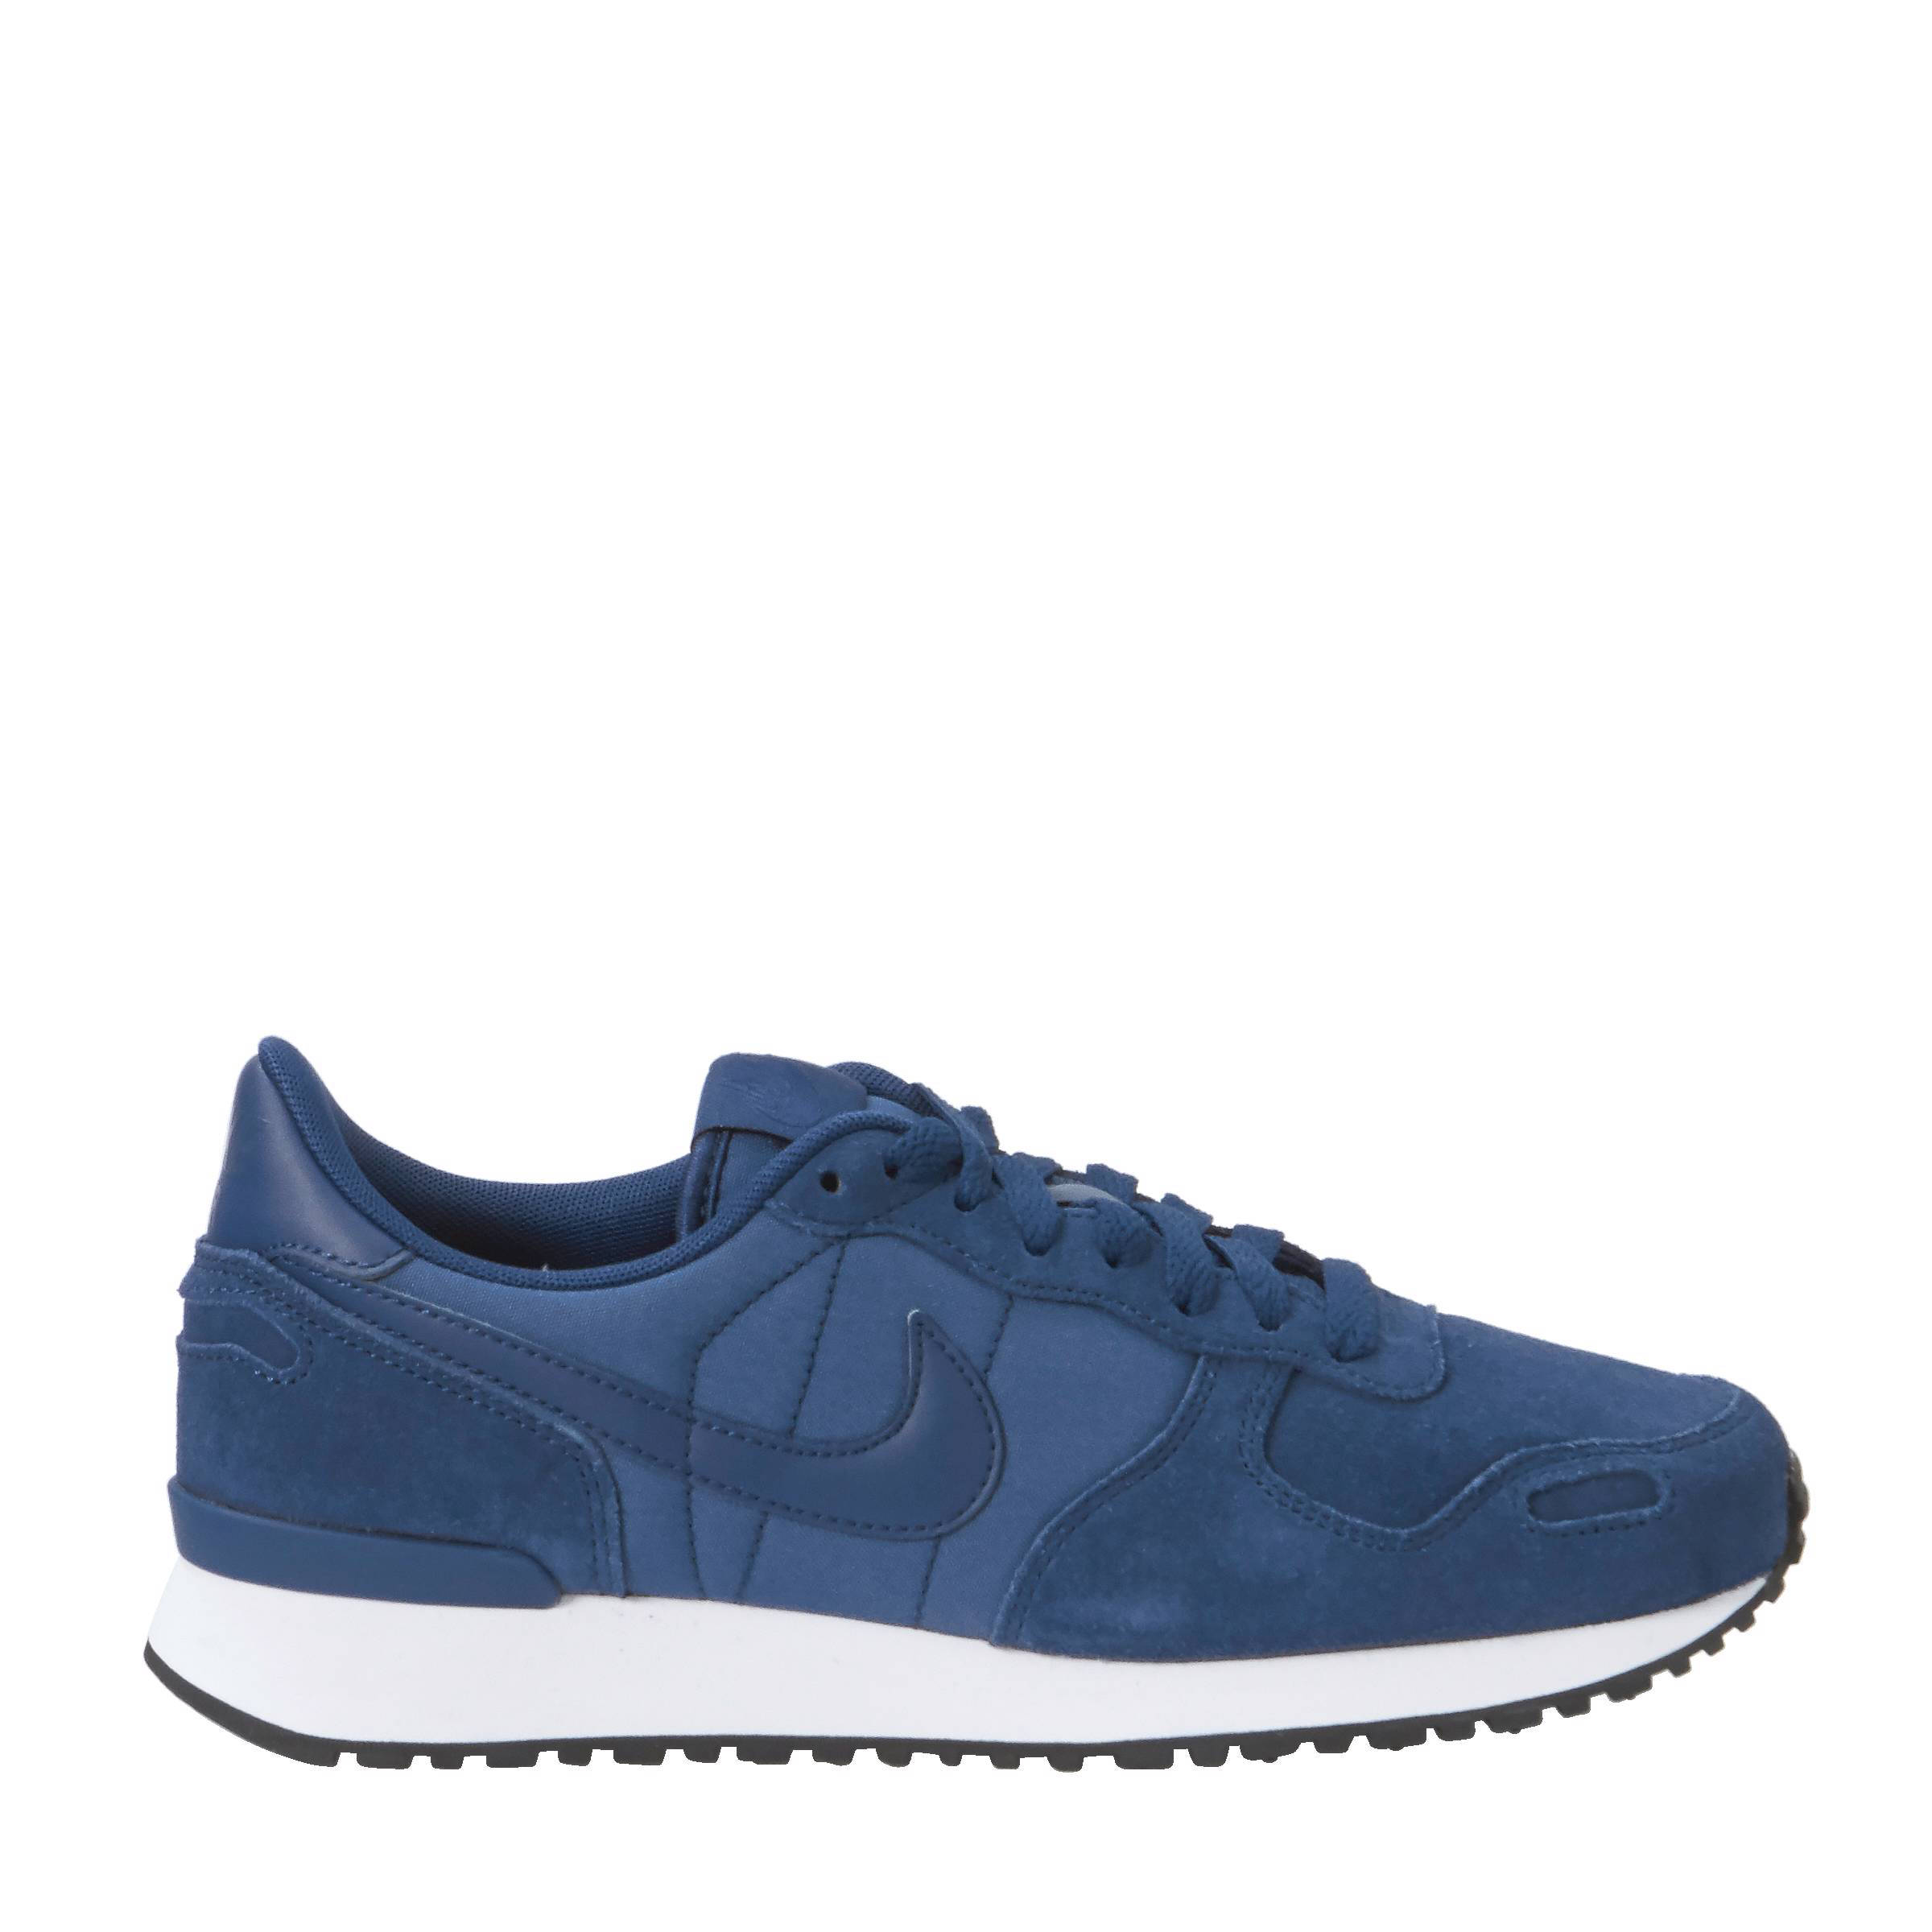 Air Vortex ltr sneakers